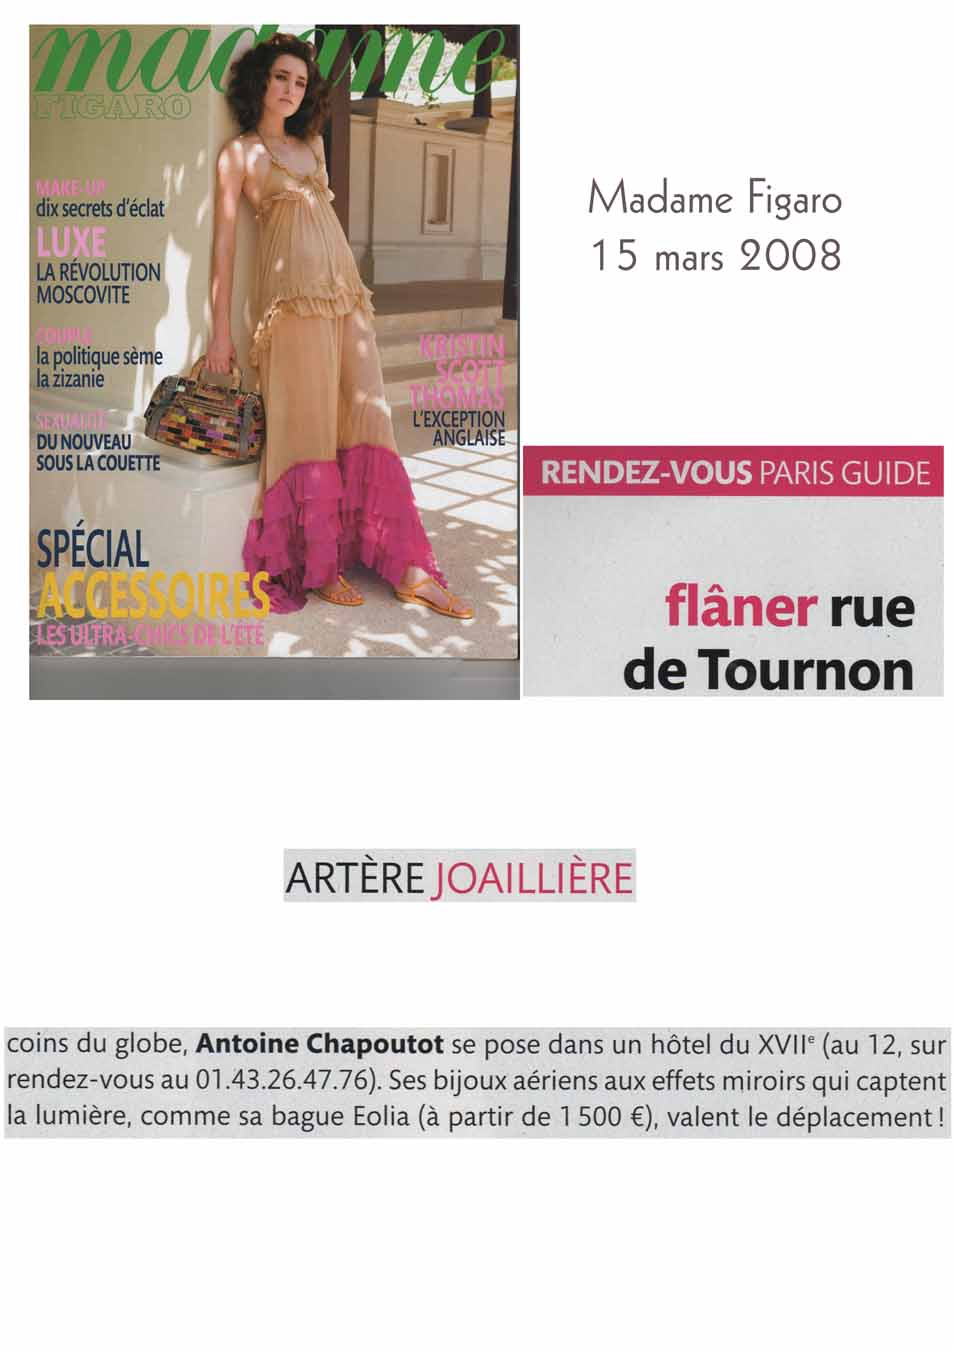 2008 Figaro Madame - 15 mars 2008 light.jpg